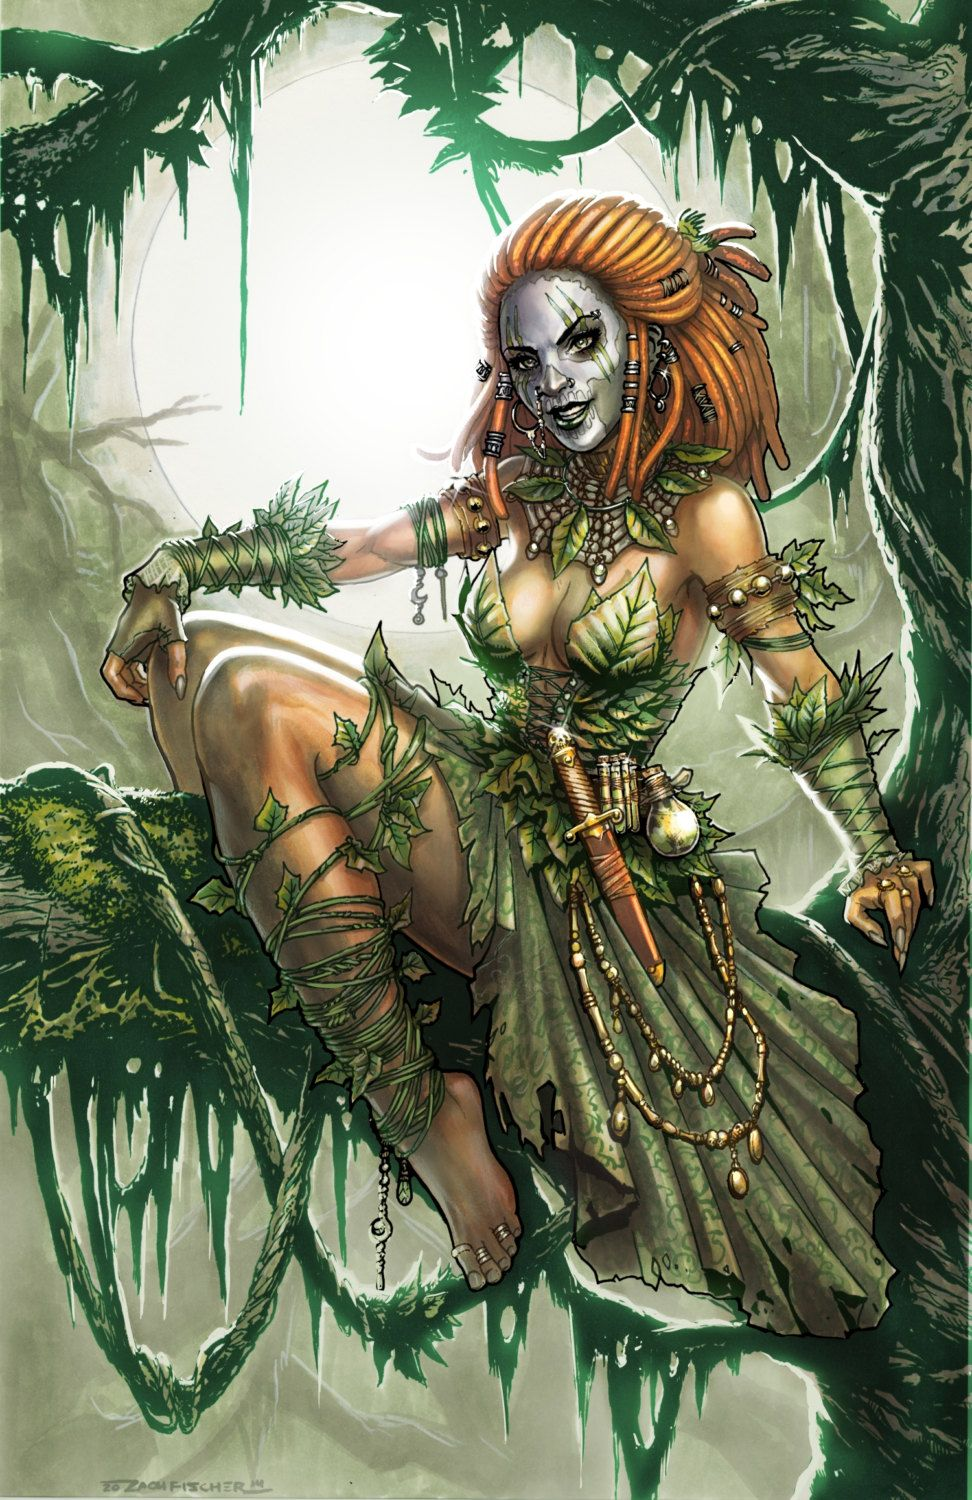 Political Anime Girl Wallpaper Voodoo Witch Doctor Poison Ivy By Zach Fischer Comics And